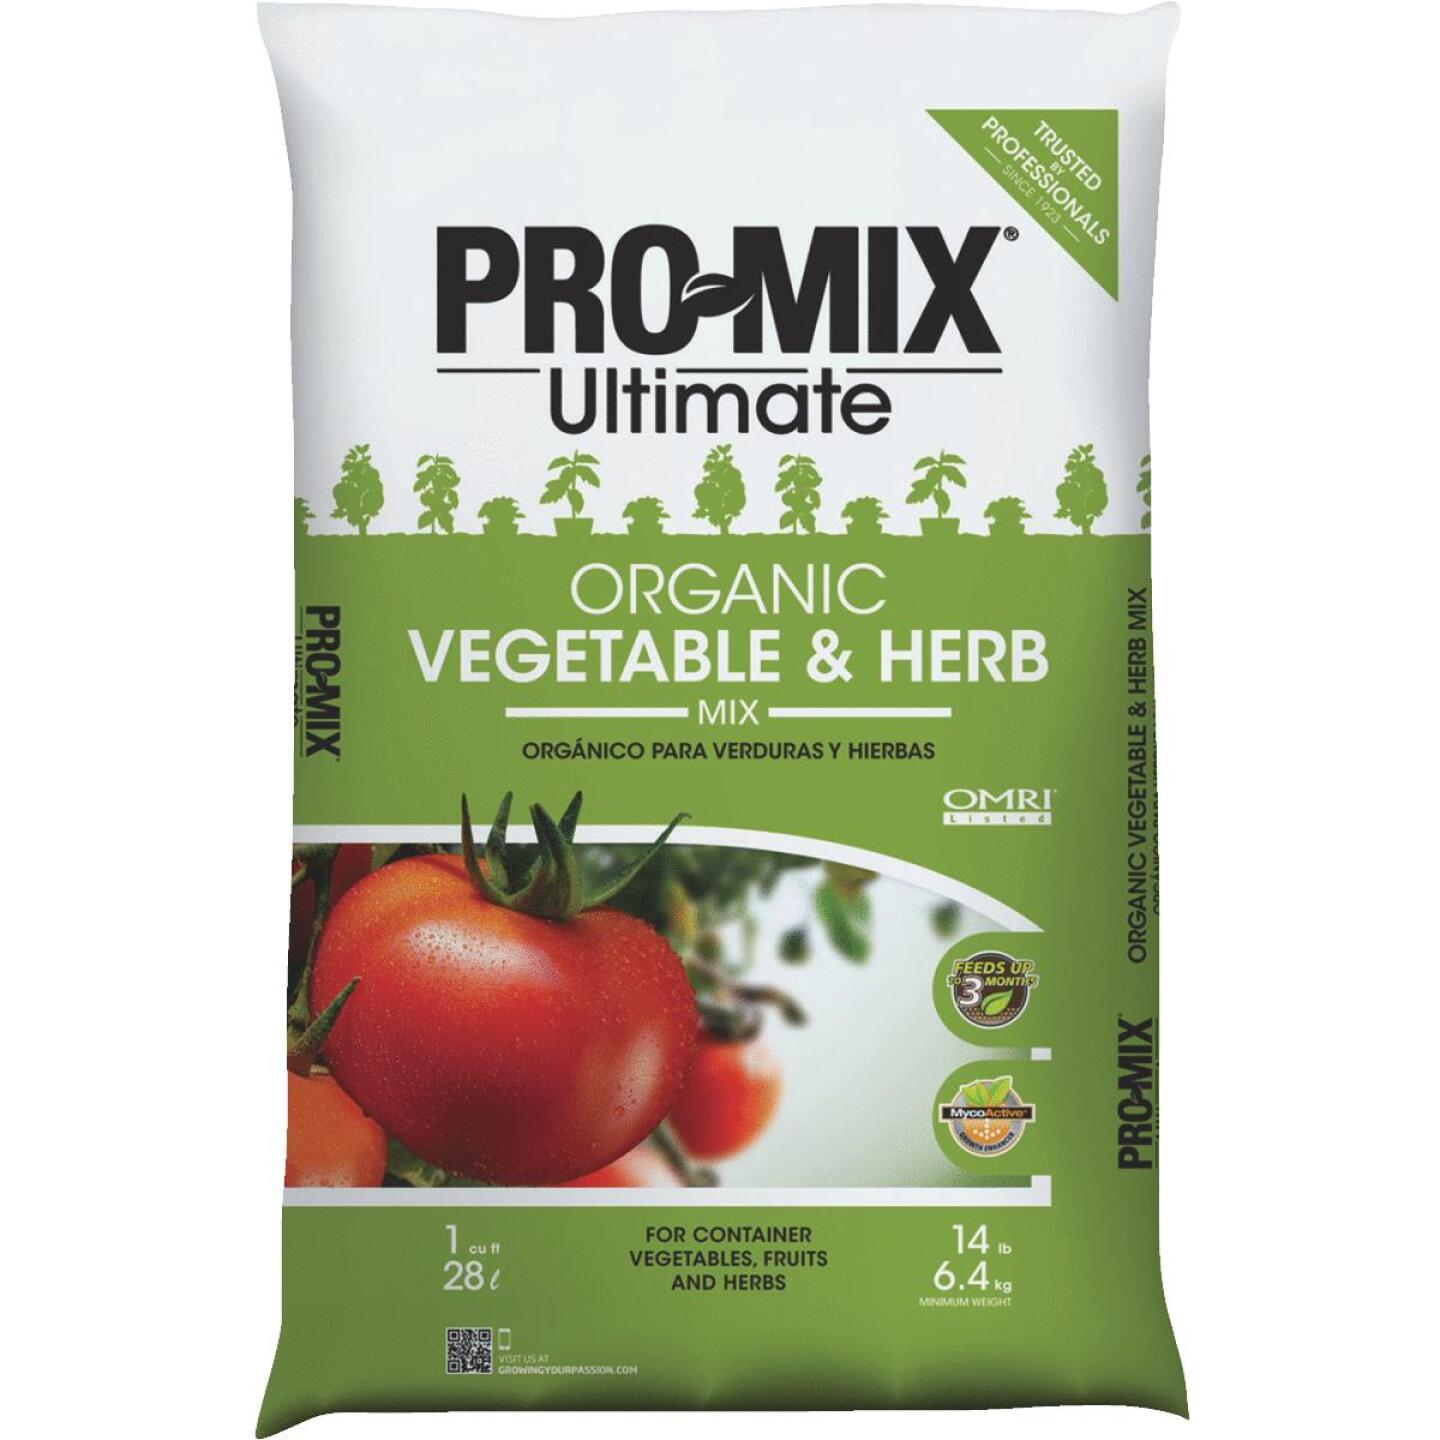 Pro Mix Ultimate 1 Cu. Ft. 14-1/2 Lb. Container Vegetables & Herbs Garden Soil Image 1